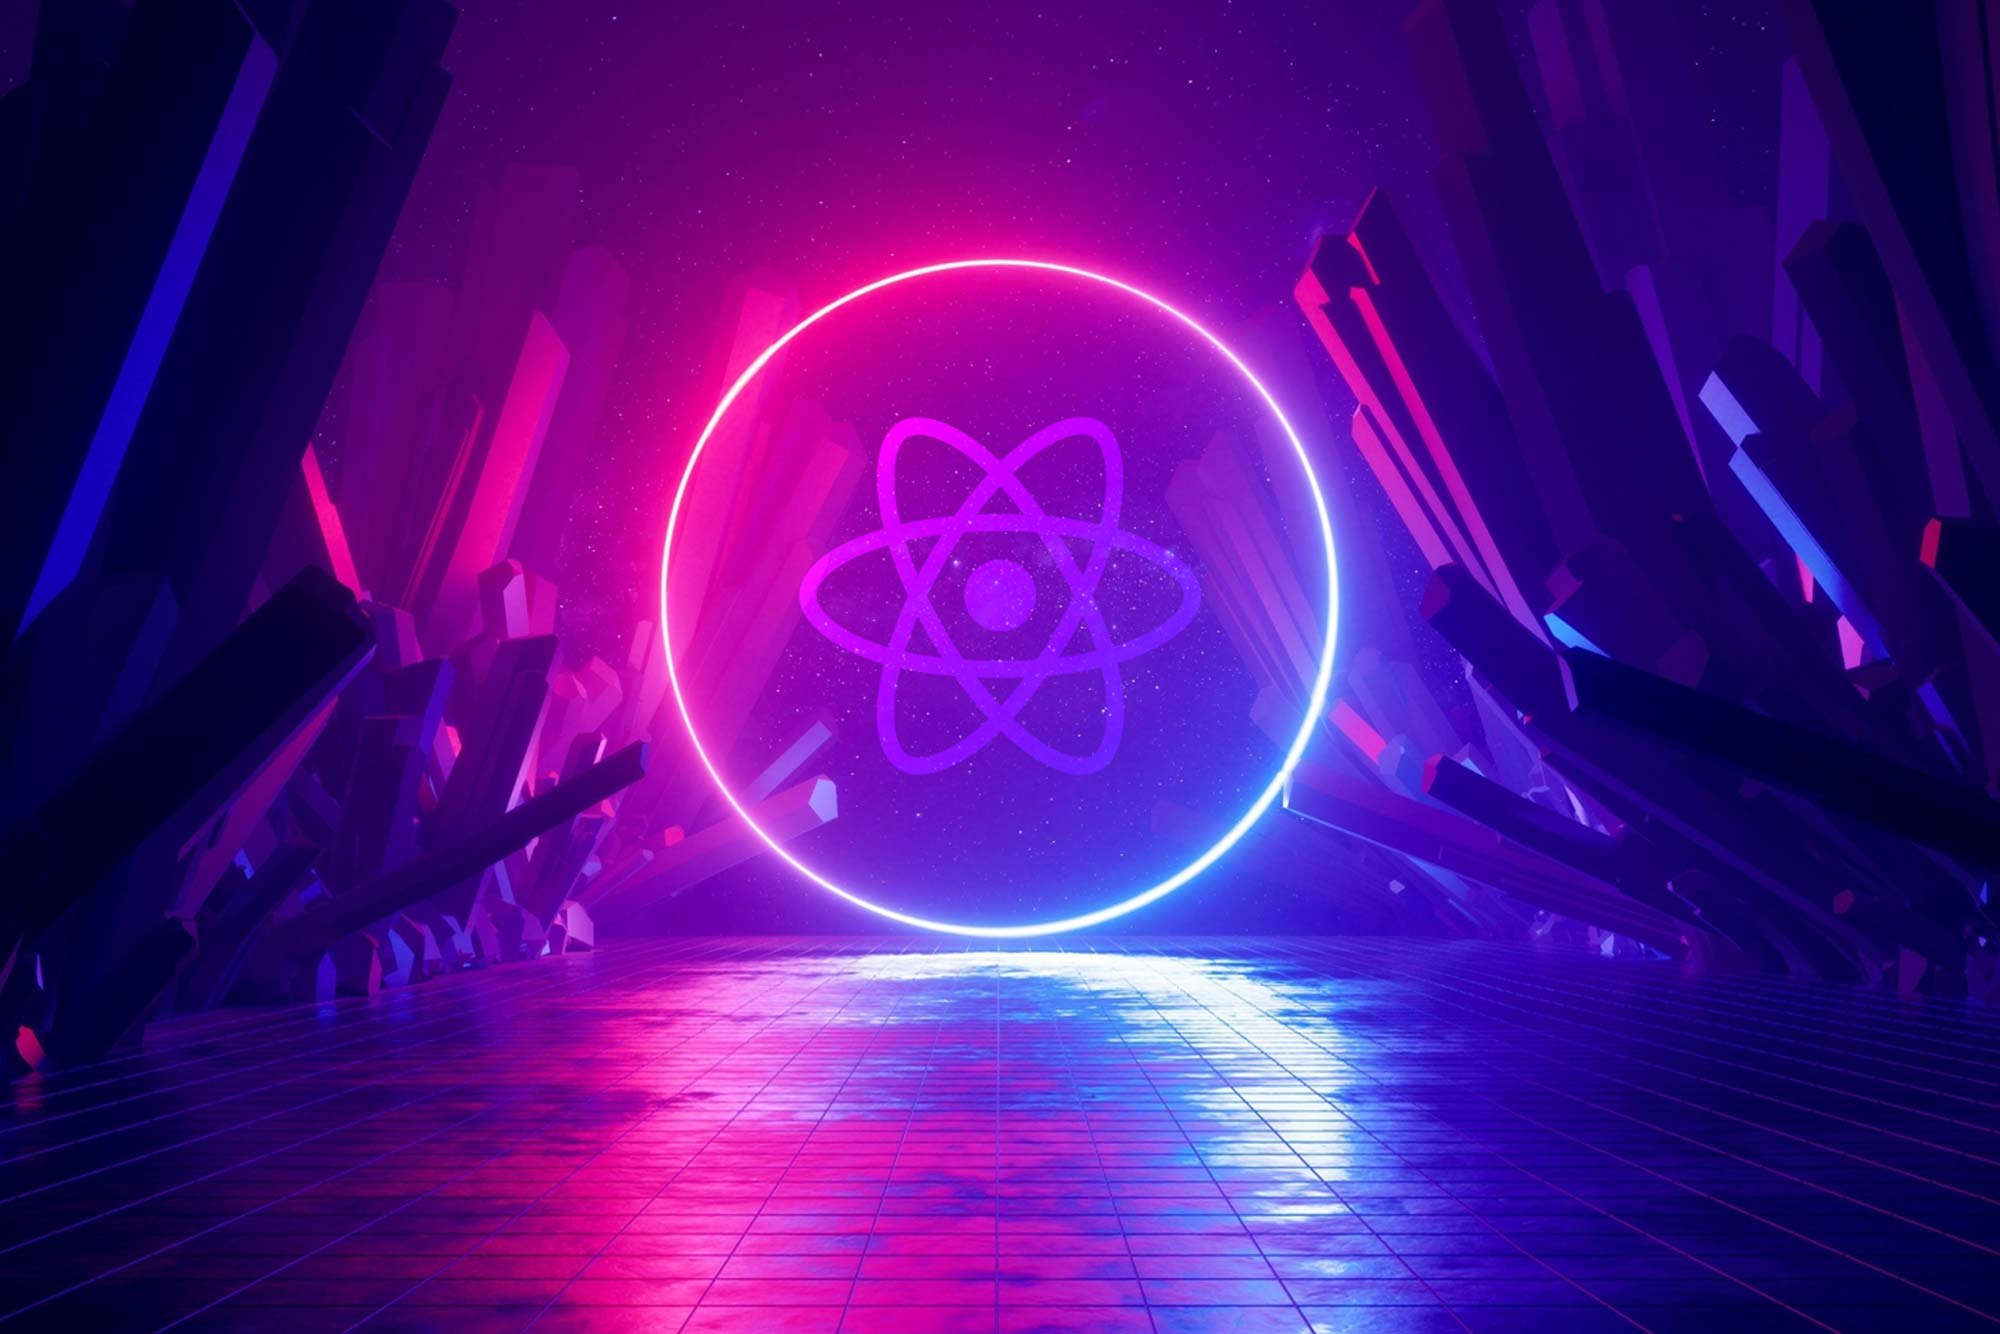 React and the power of visualization